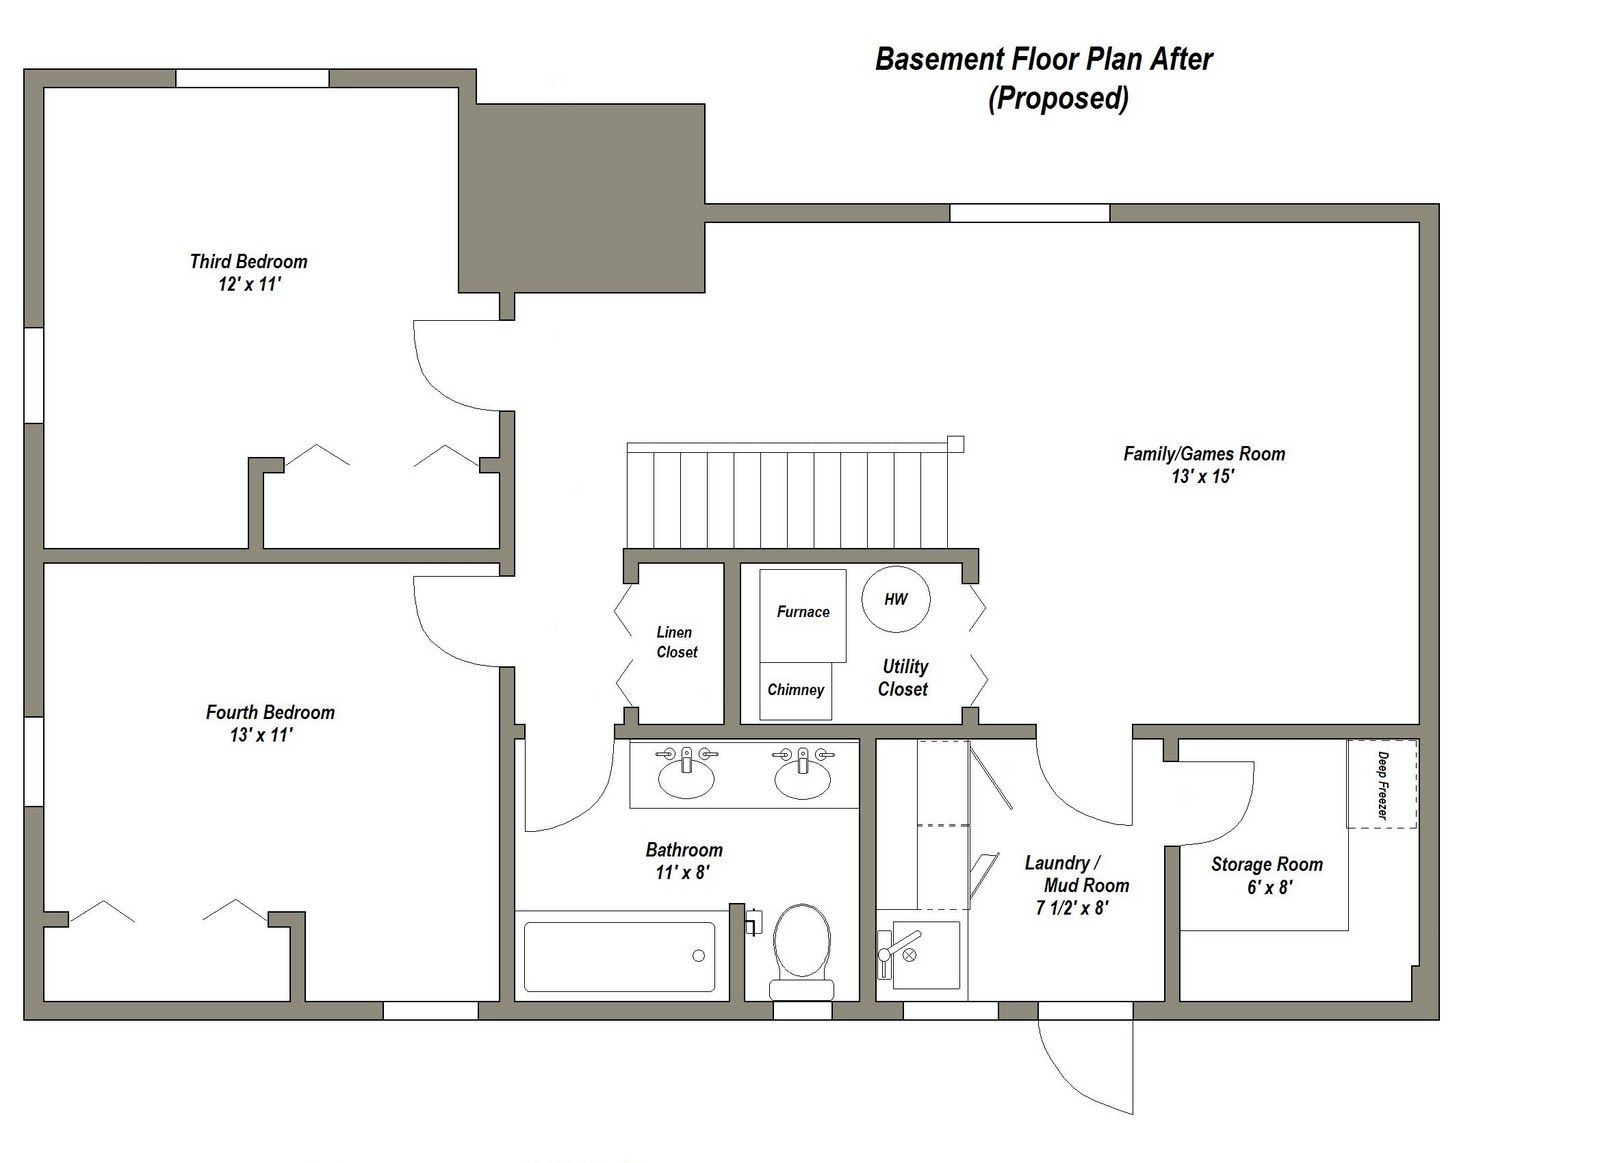 Basements Remodel Floor Plan 28x40 Basement Floor Plan After